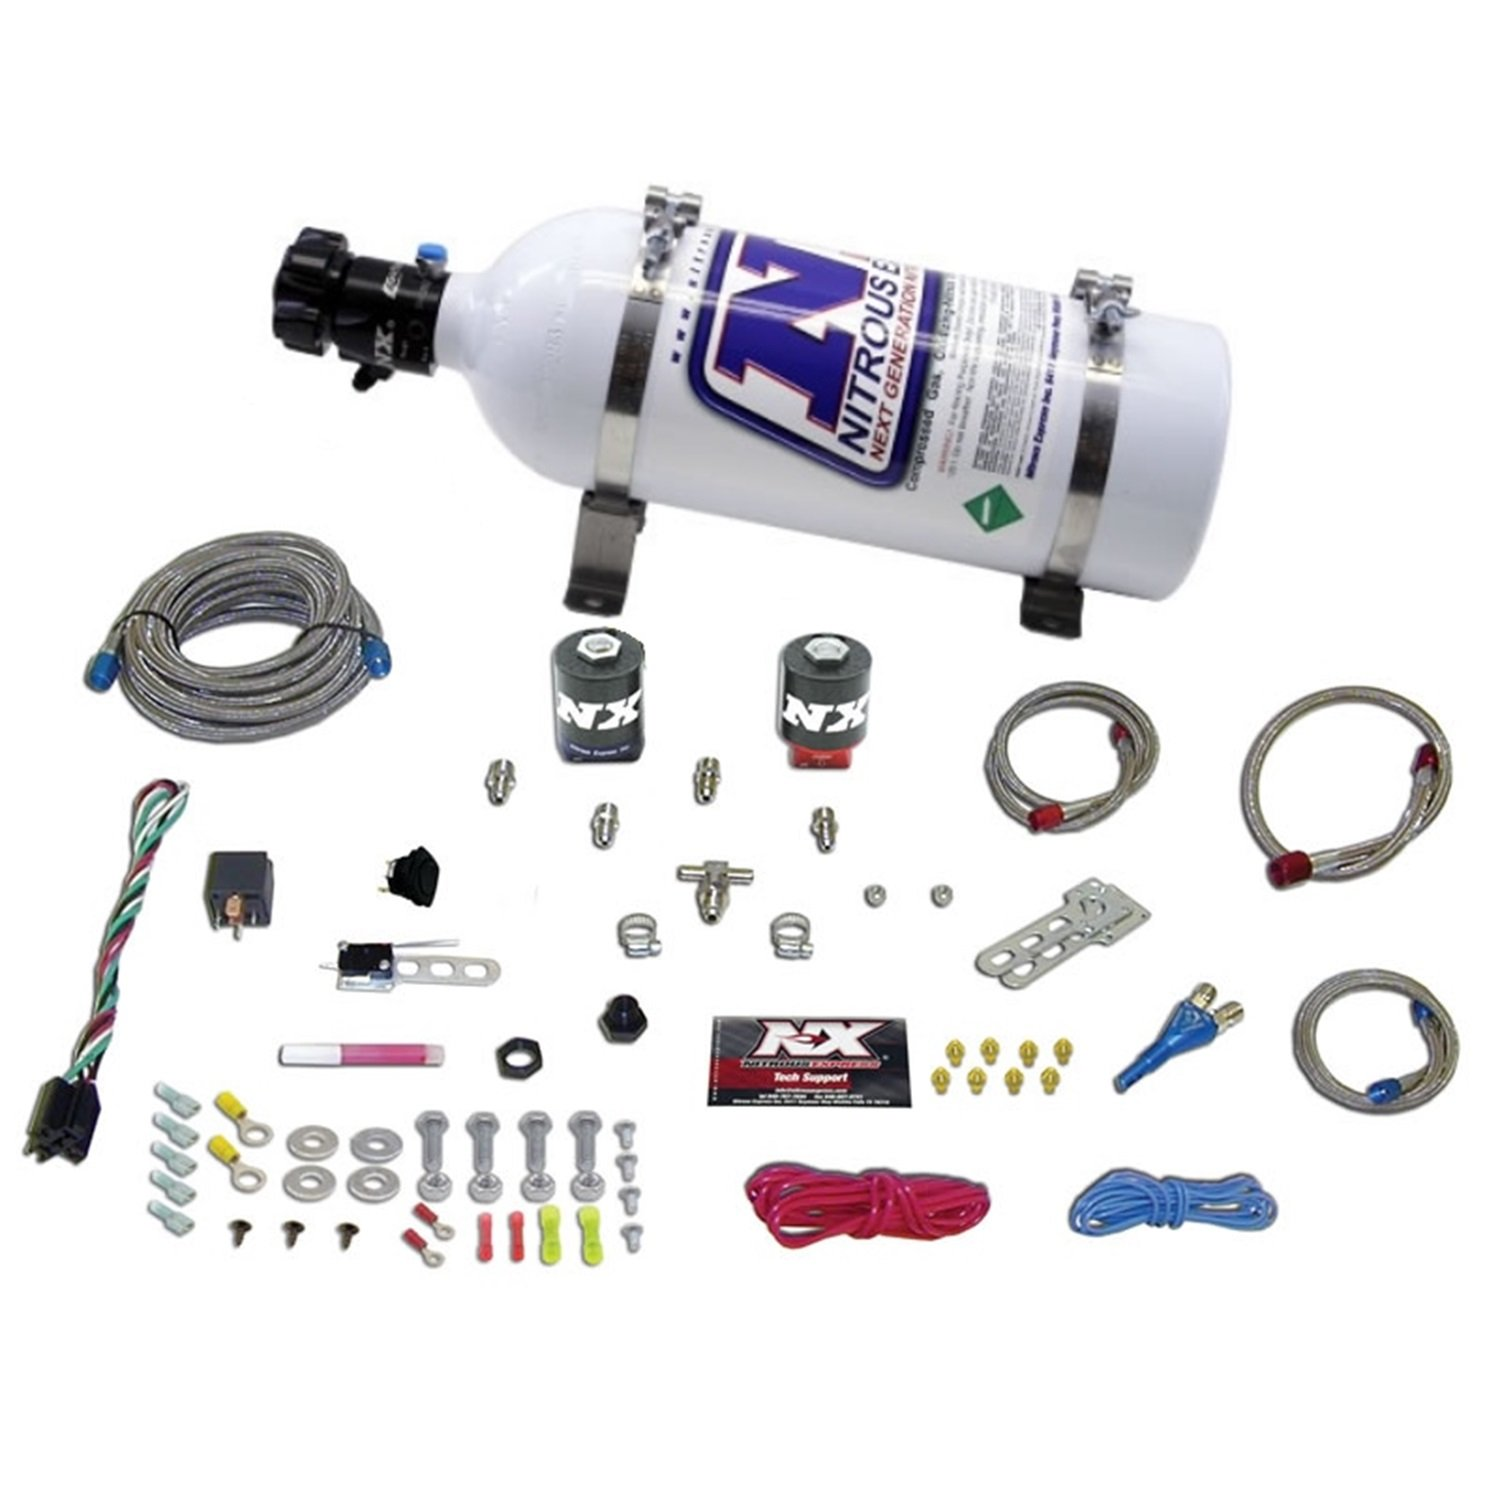 Nitrous Express 20915-05 35-150 HP Universal Single Nozzle System for EFI with 5 lbs. Bottle